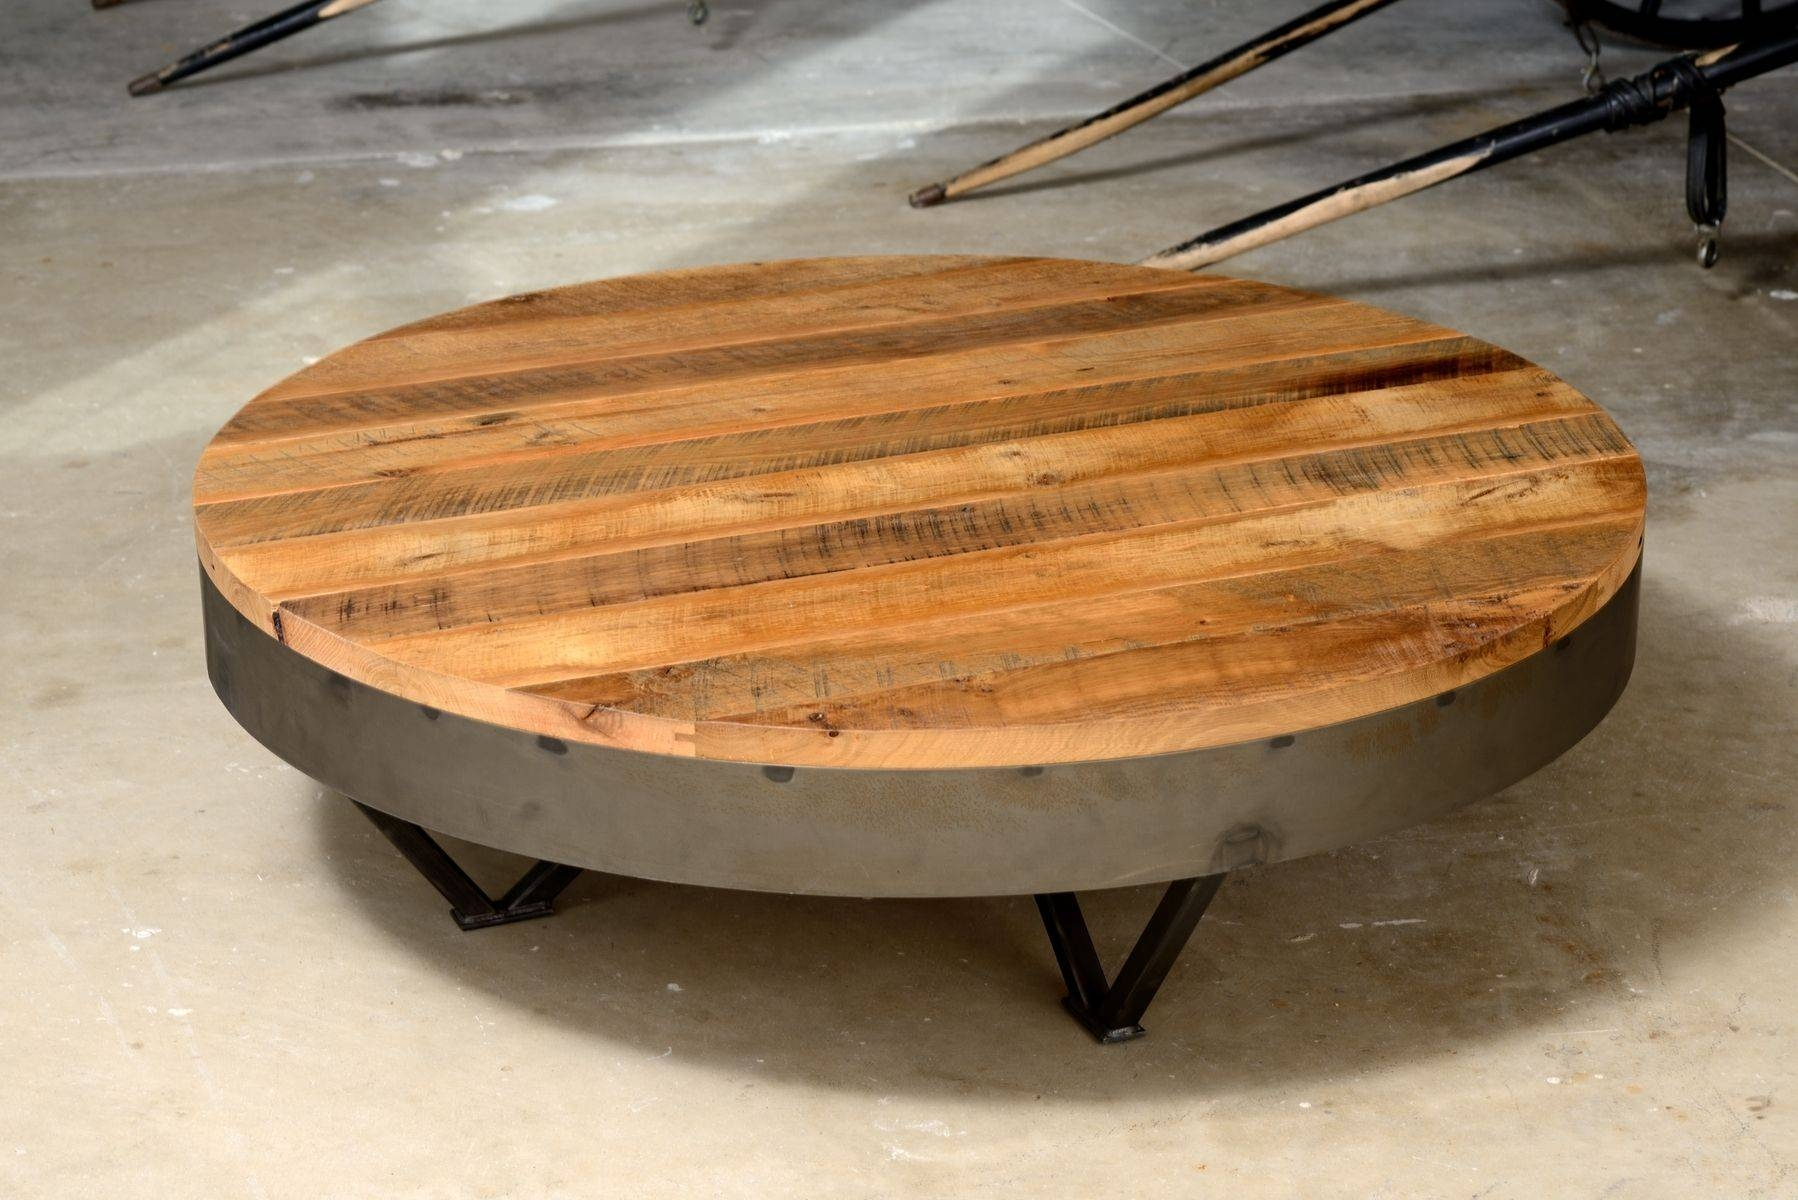 30 inspirations of dark wood round coffee tables round dark wood coffee table gaining the natural power with regarding dark wood round coffee tables geotapseo Image collections